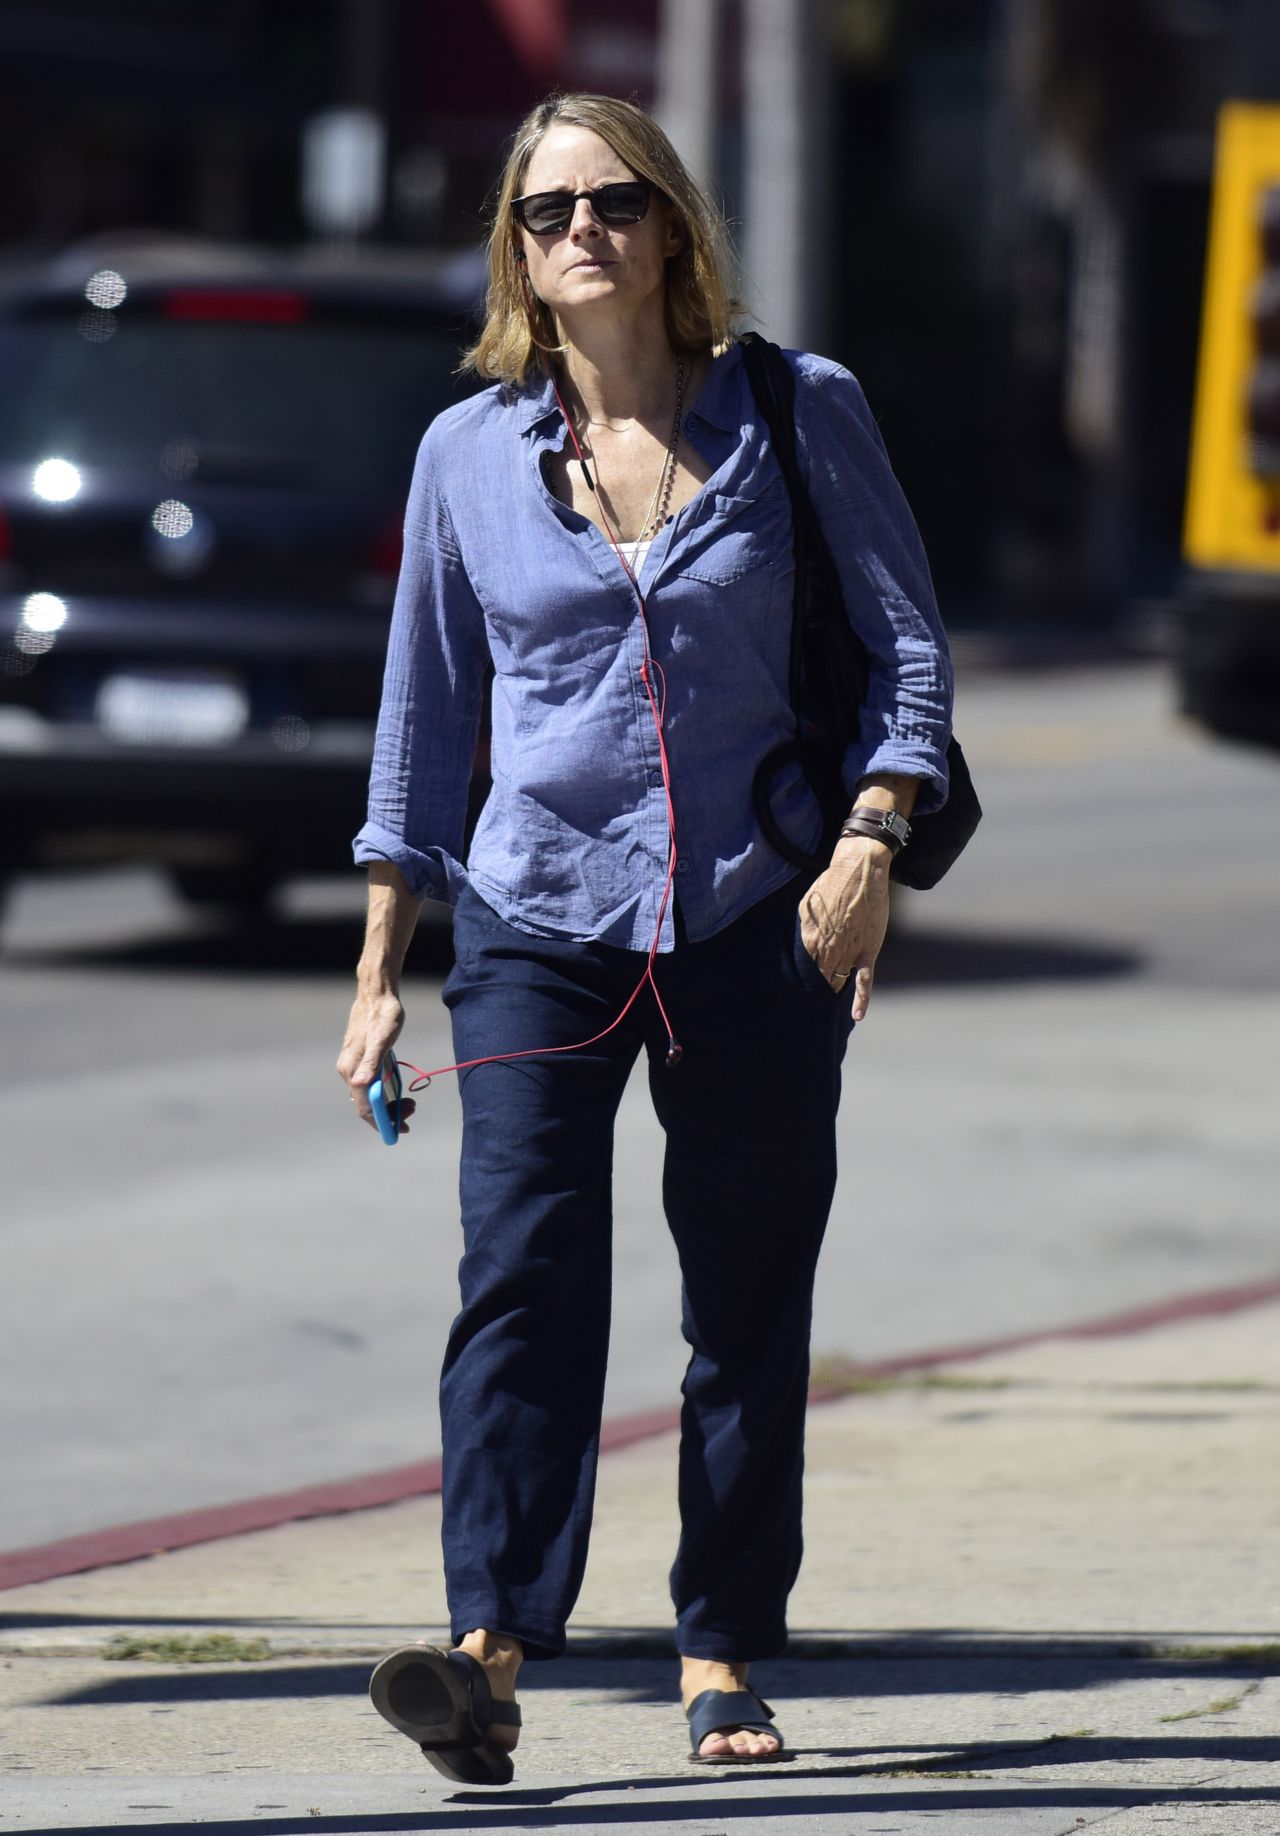 Jodie Foster Street Style - Out in West Hollywood, September 2014